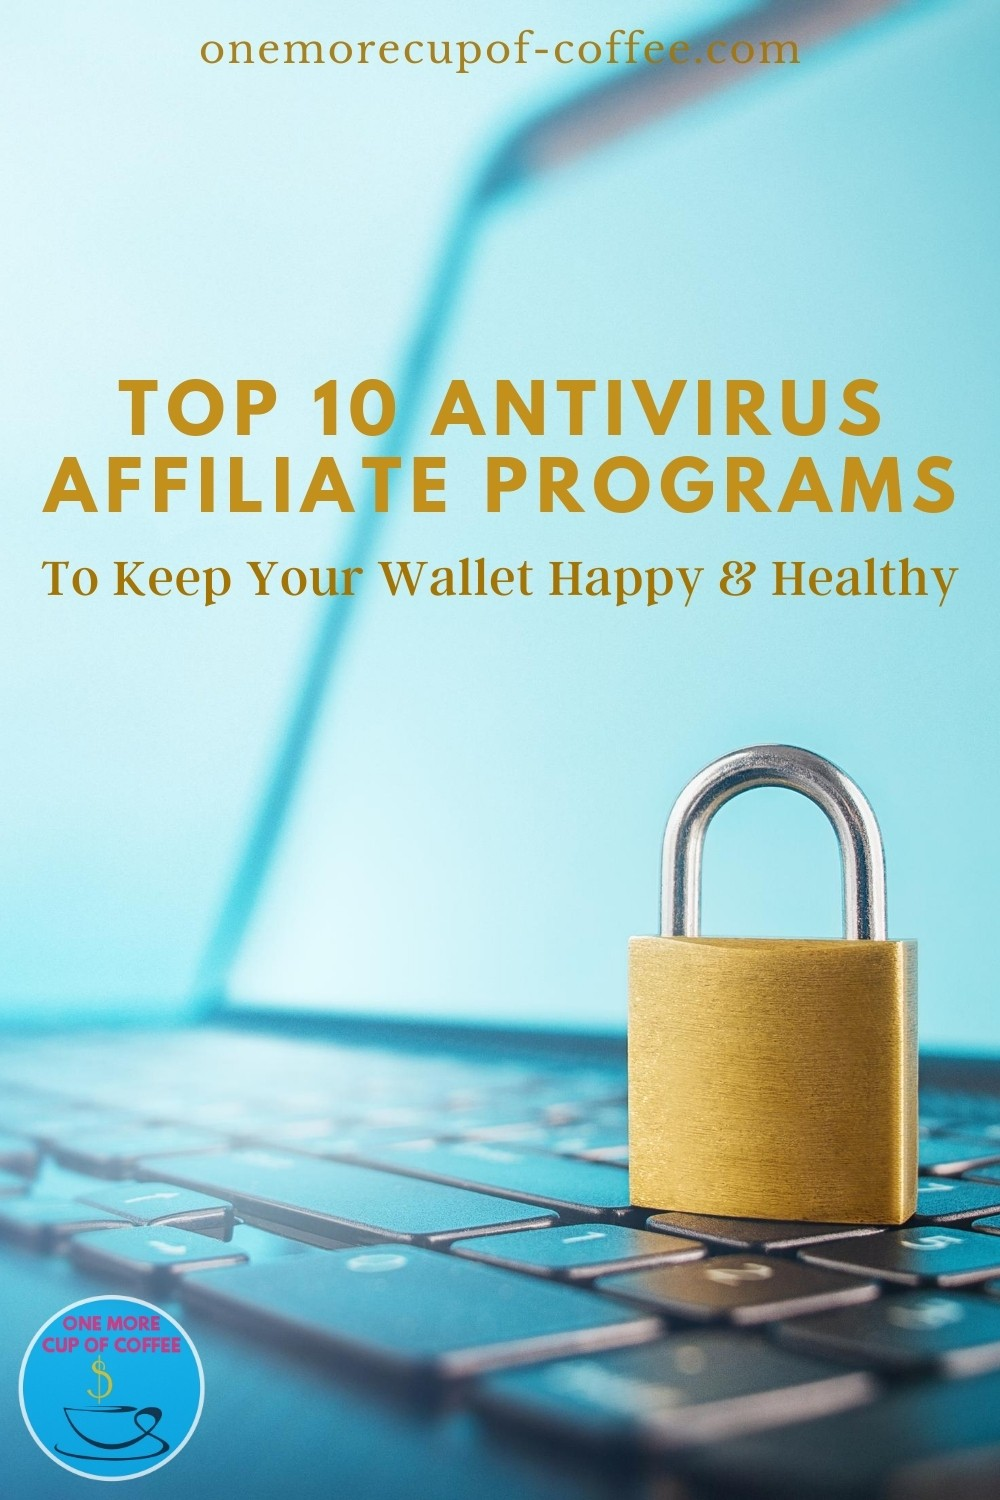 """closeup image of golden padlock sitting on top of a laptop keyboard, with text overlay """"Top 10 Antivirus Affiliate Programs To Keep Your Wallet Happy & Healthy"""""""